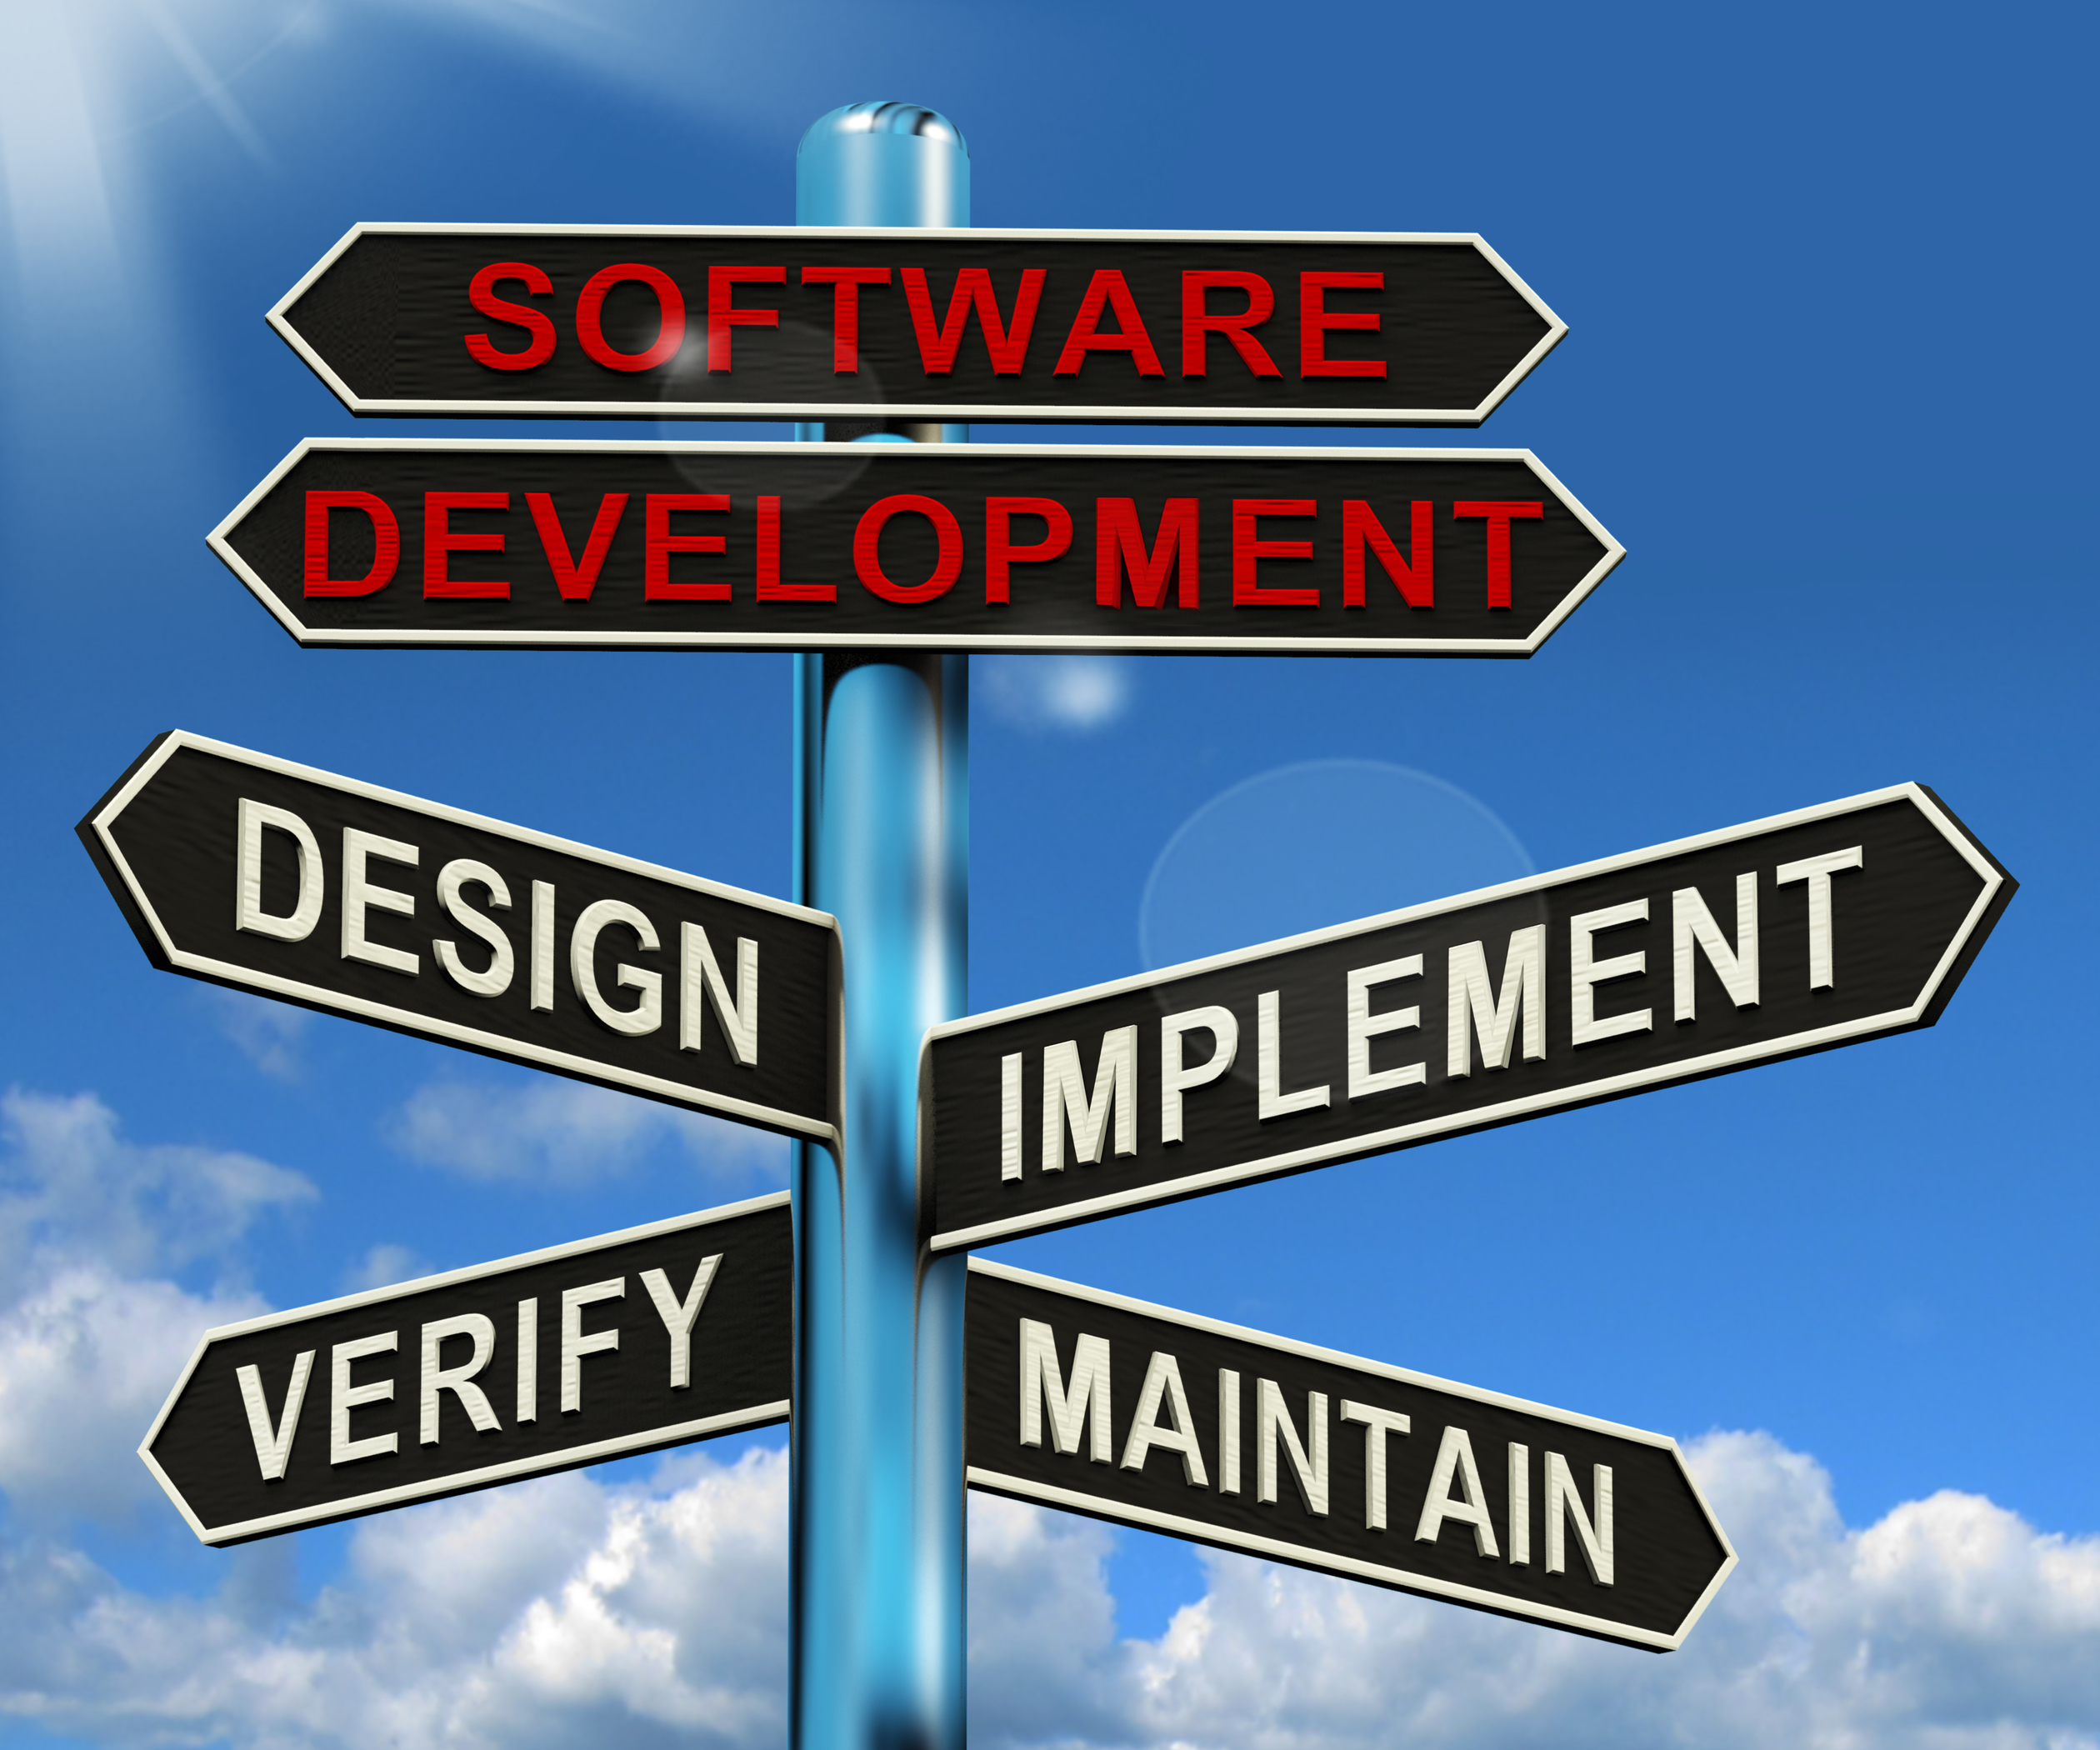 Software Development Pyramid Shows Design Implement Maintain And Verify